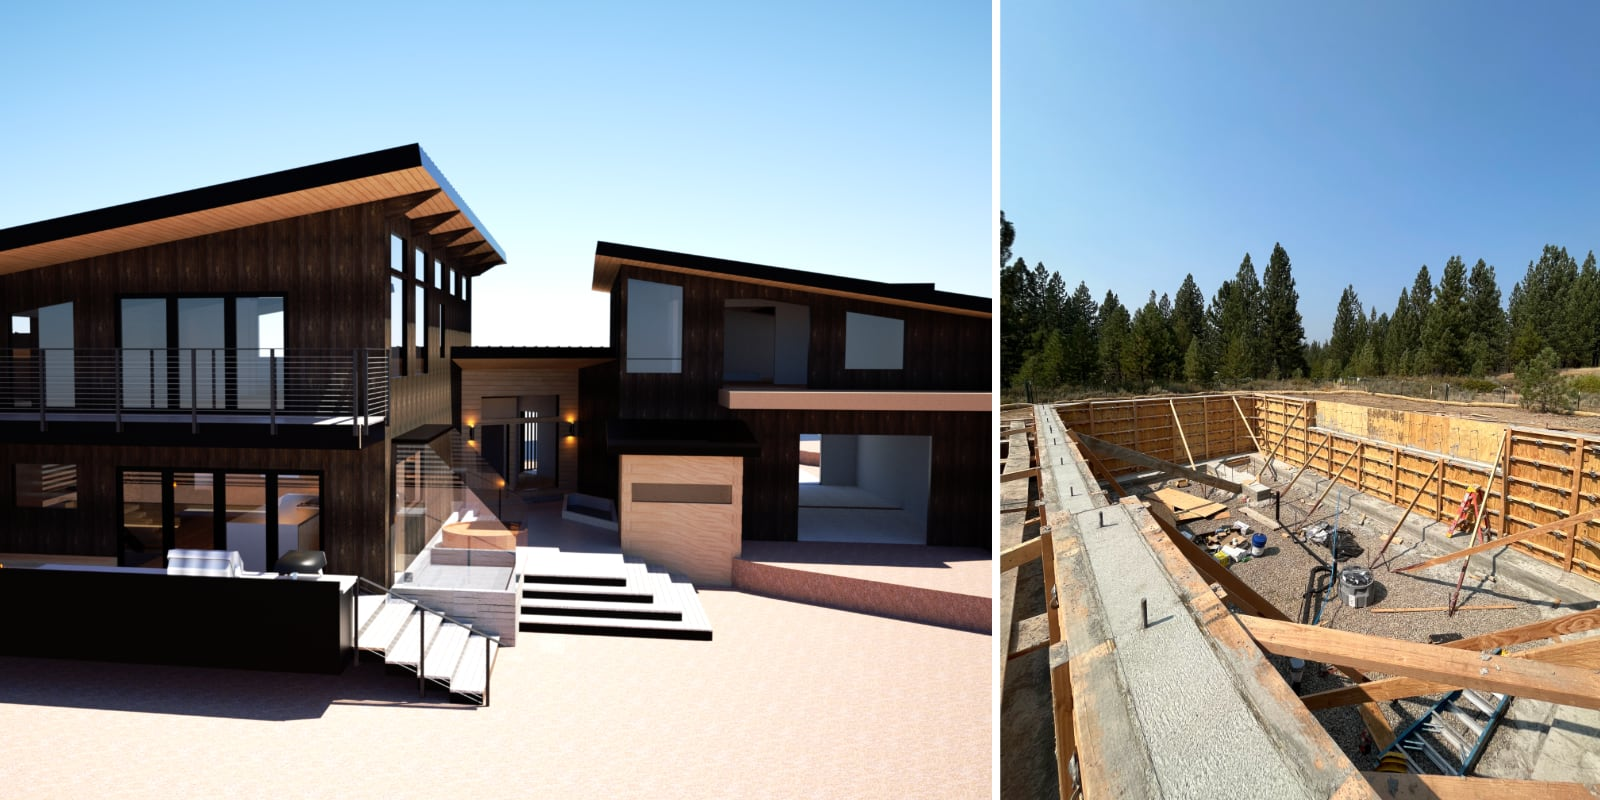 Aster Pines —Render vs Reality